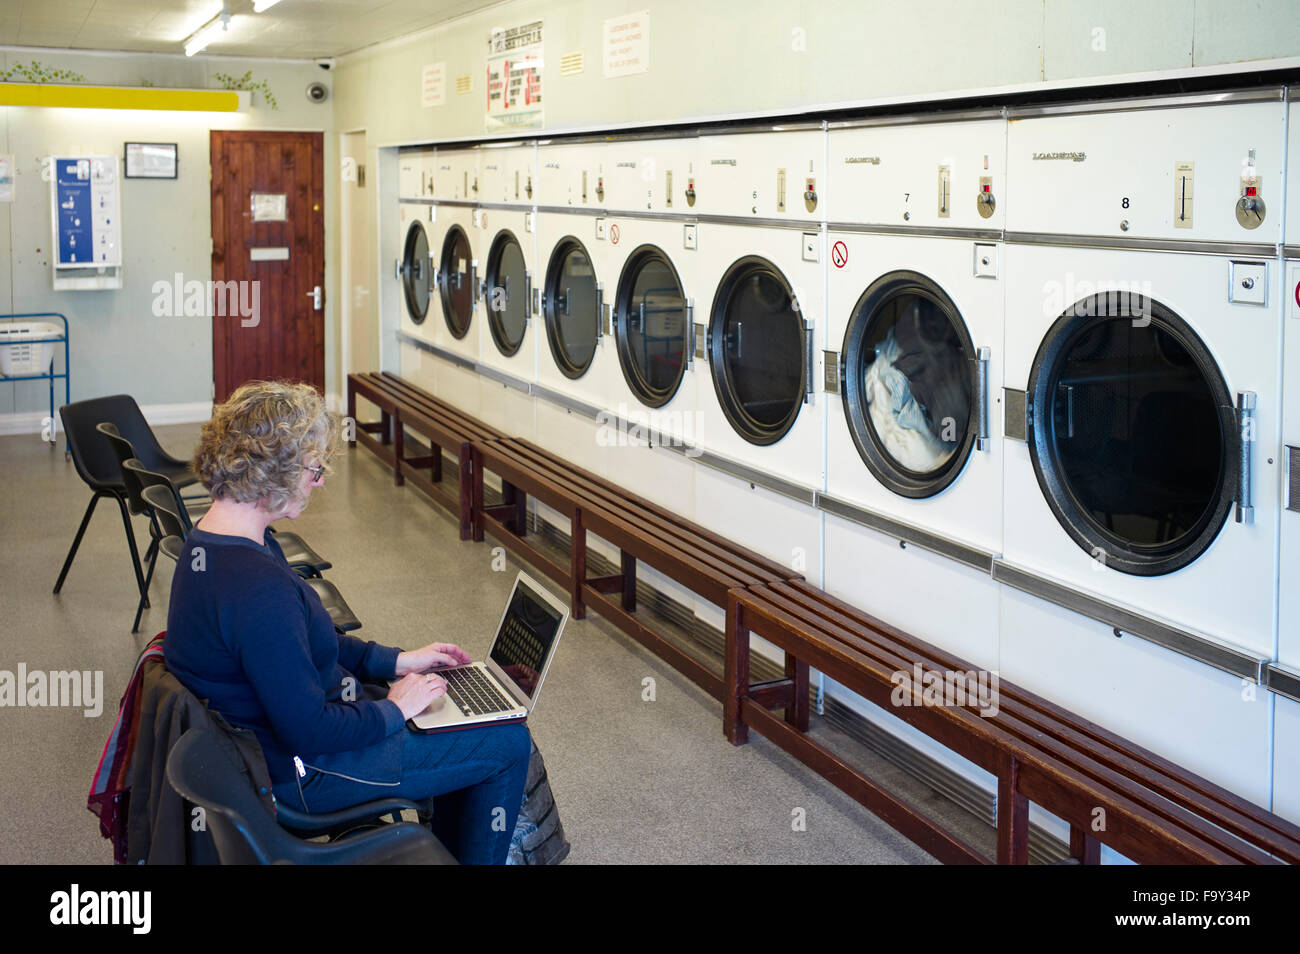 Woman on laptop in launderette - Stock Image